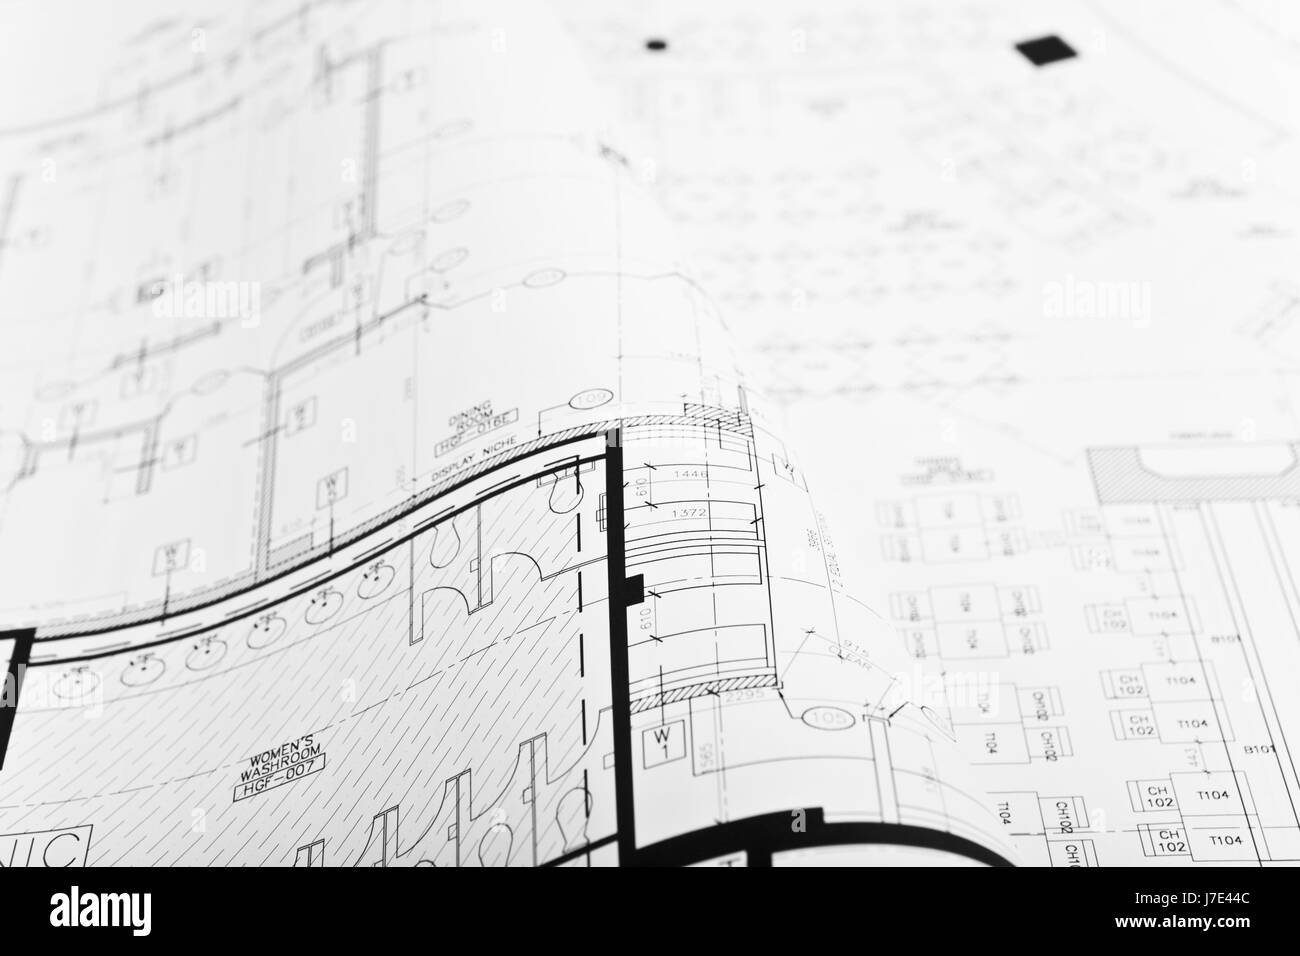 Architectural blueprint background stock photo royalty free image architectural blueprint background malvernweather Image collections